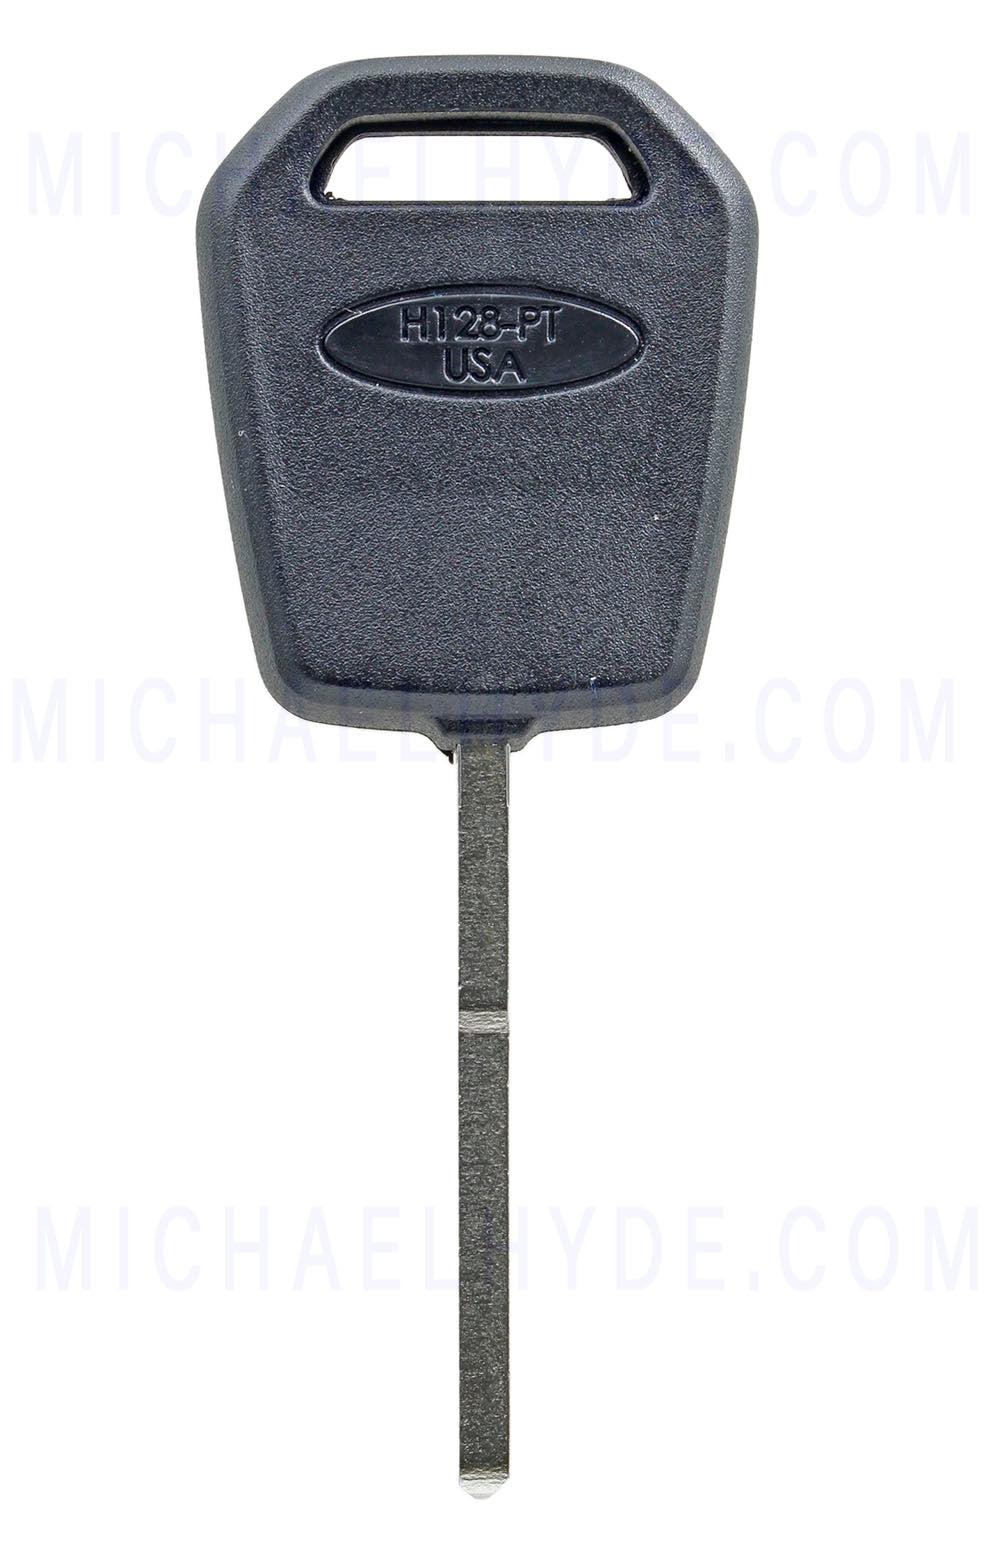 ILCO Ford 128 Bit Transponder Key - HU101 - AX00012124 - Edge, Expedition, Explorer, F-150, Fusion, Mustang, Continental and more